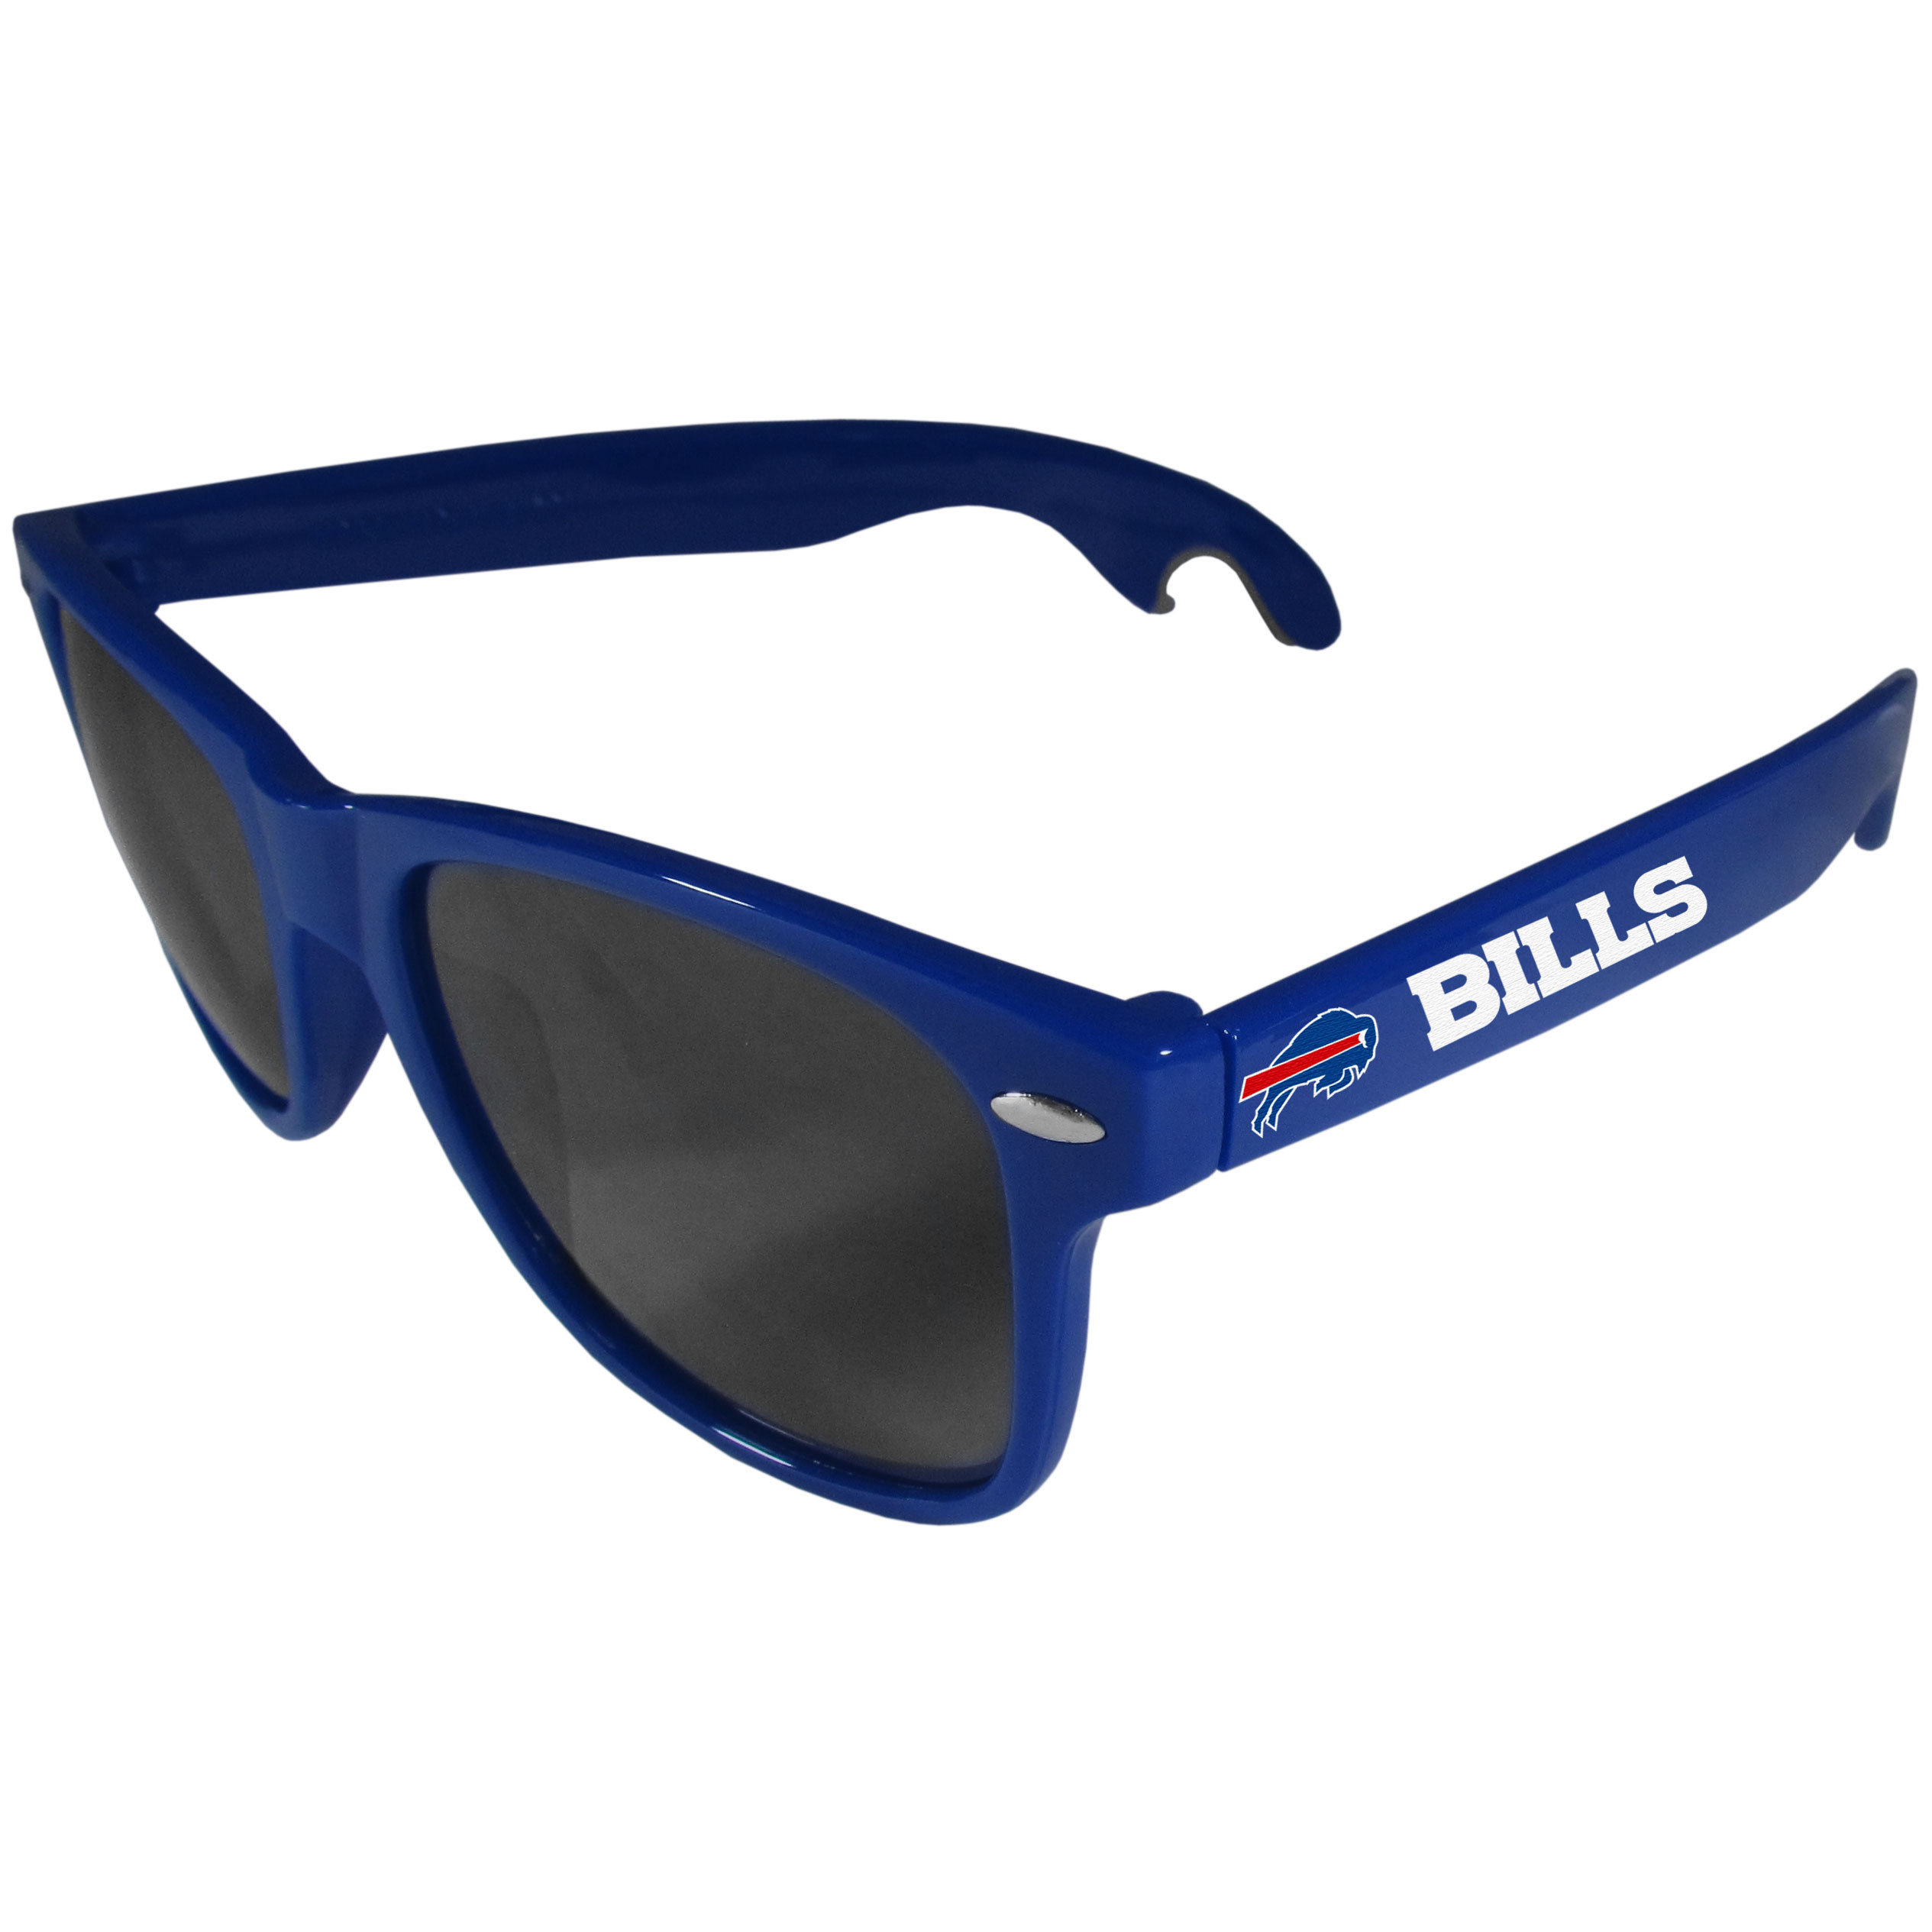 Buffalo Bills Beachfarer Bottle Opener Sunglasses, Blue - Seriously, these sunglasses open bottles! Keep the party going with these amazing Buffalo Bills bottle opener sunglasses. The stylish retro frames feature team designs on the arms and functional bottle openers on the end of the arms. Whether you are at the beach or having a backyard BBQ on game day, these shades will keep your eyes protected with 100% UVA/UVB protection and keep you hydrated with the handy bottle opener arms.